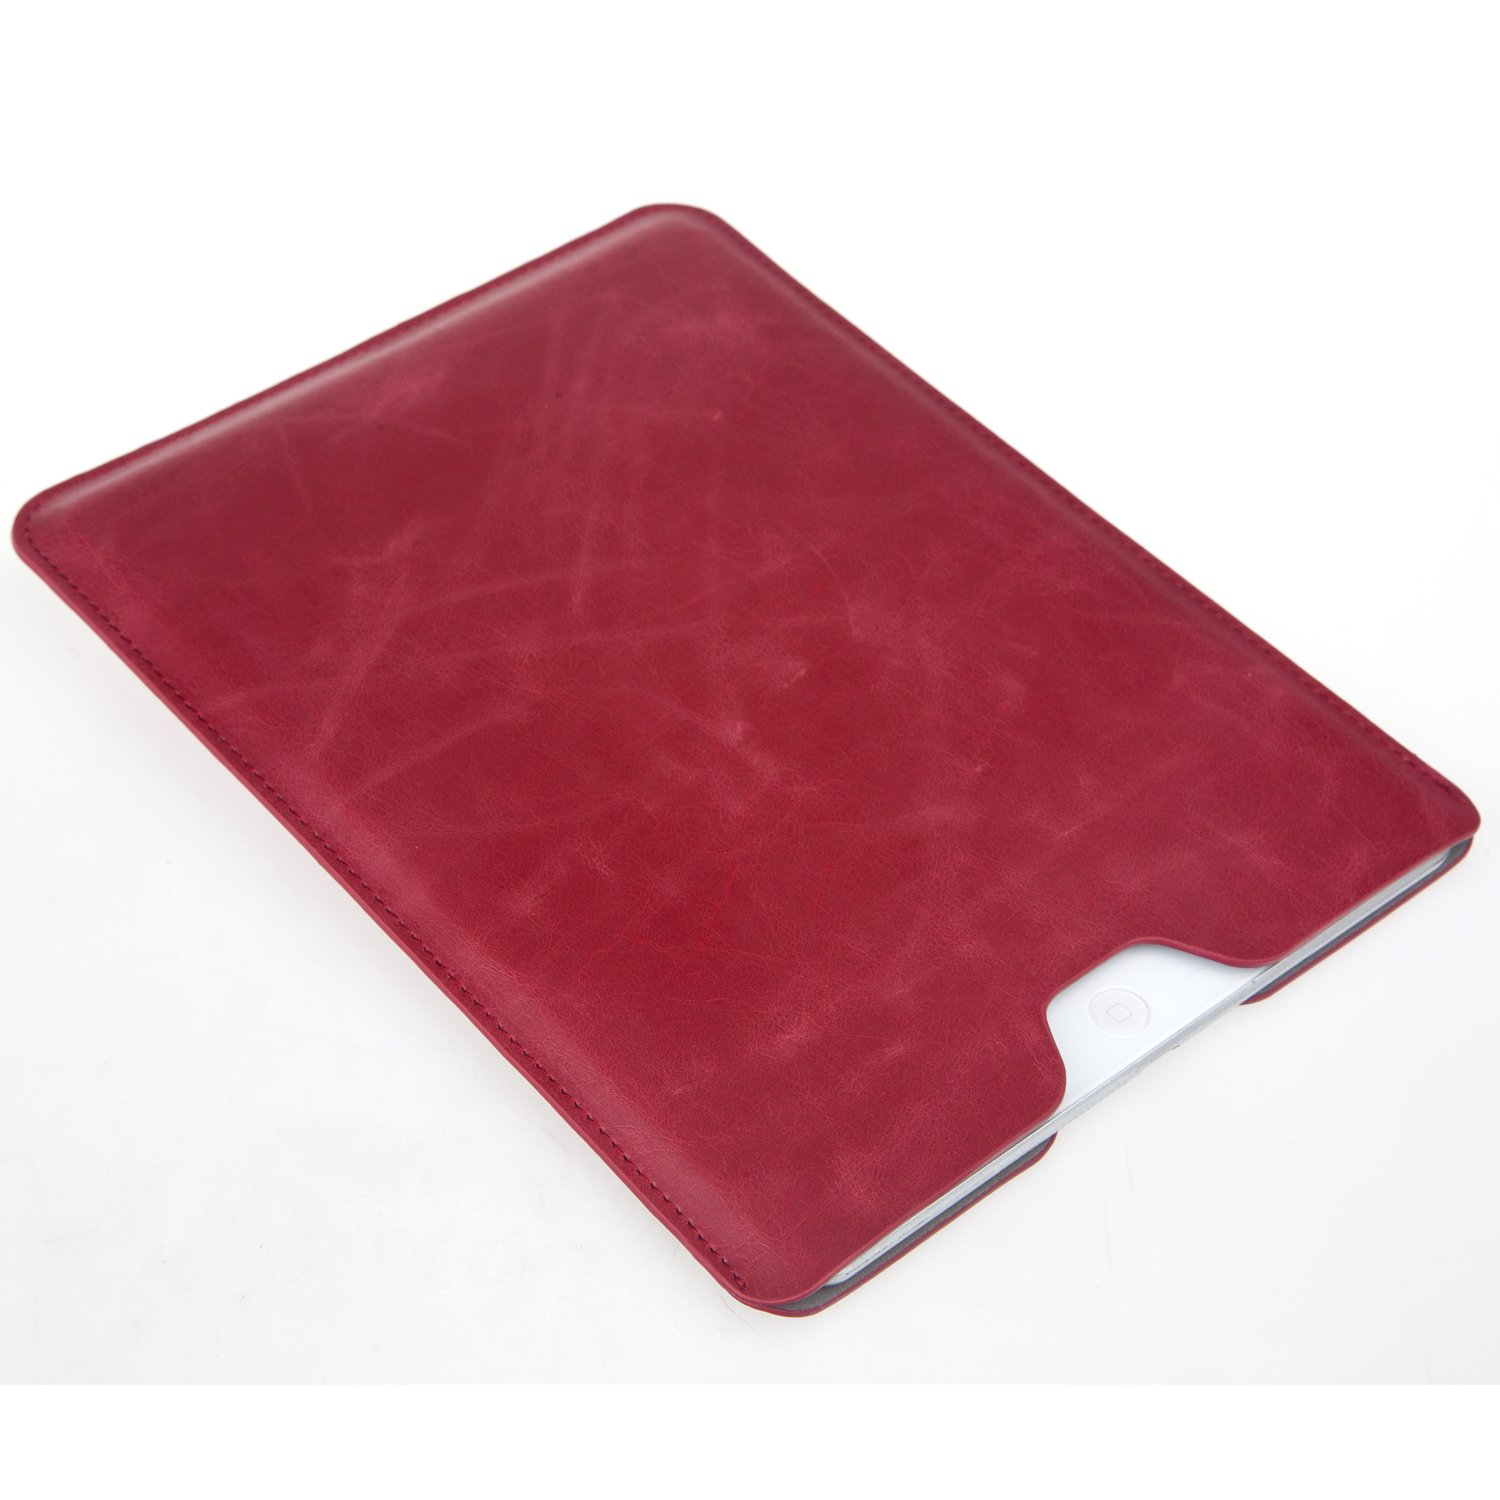 Red Bear Motion for iPad Mini 4 Premium Slim Sleeve Case Cover for iPad Mini 4 Without Other Case on iPad